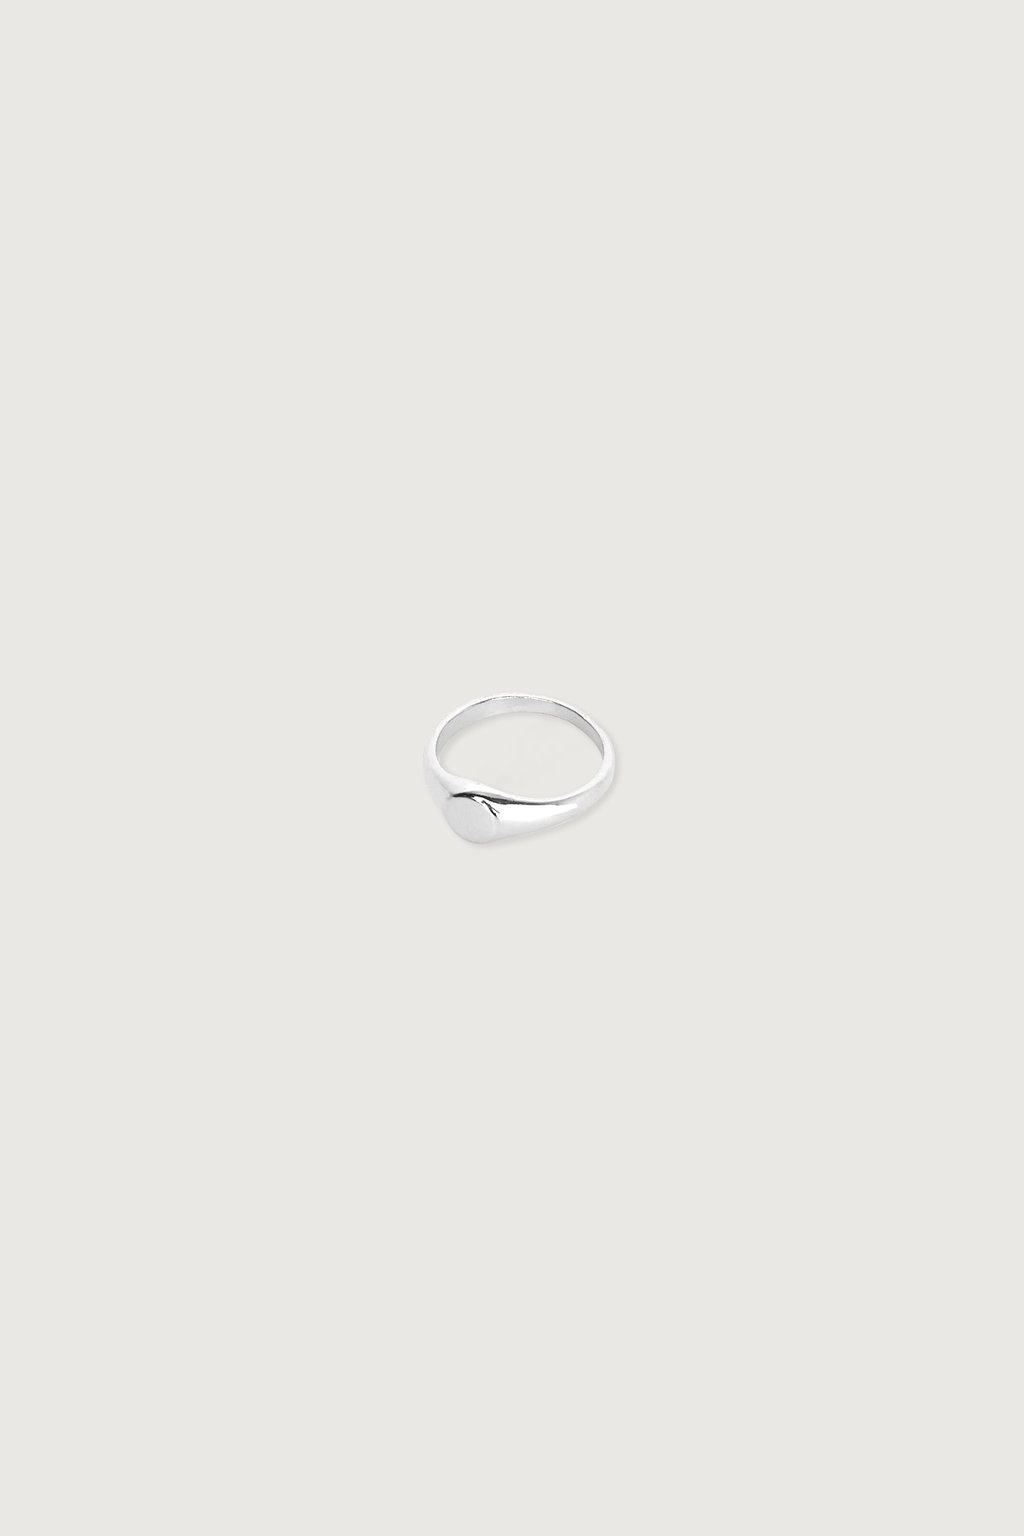 Ring 3413 Silver 3